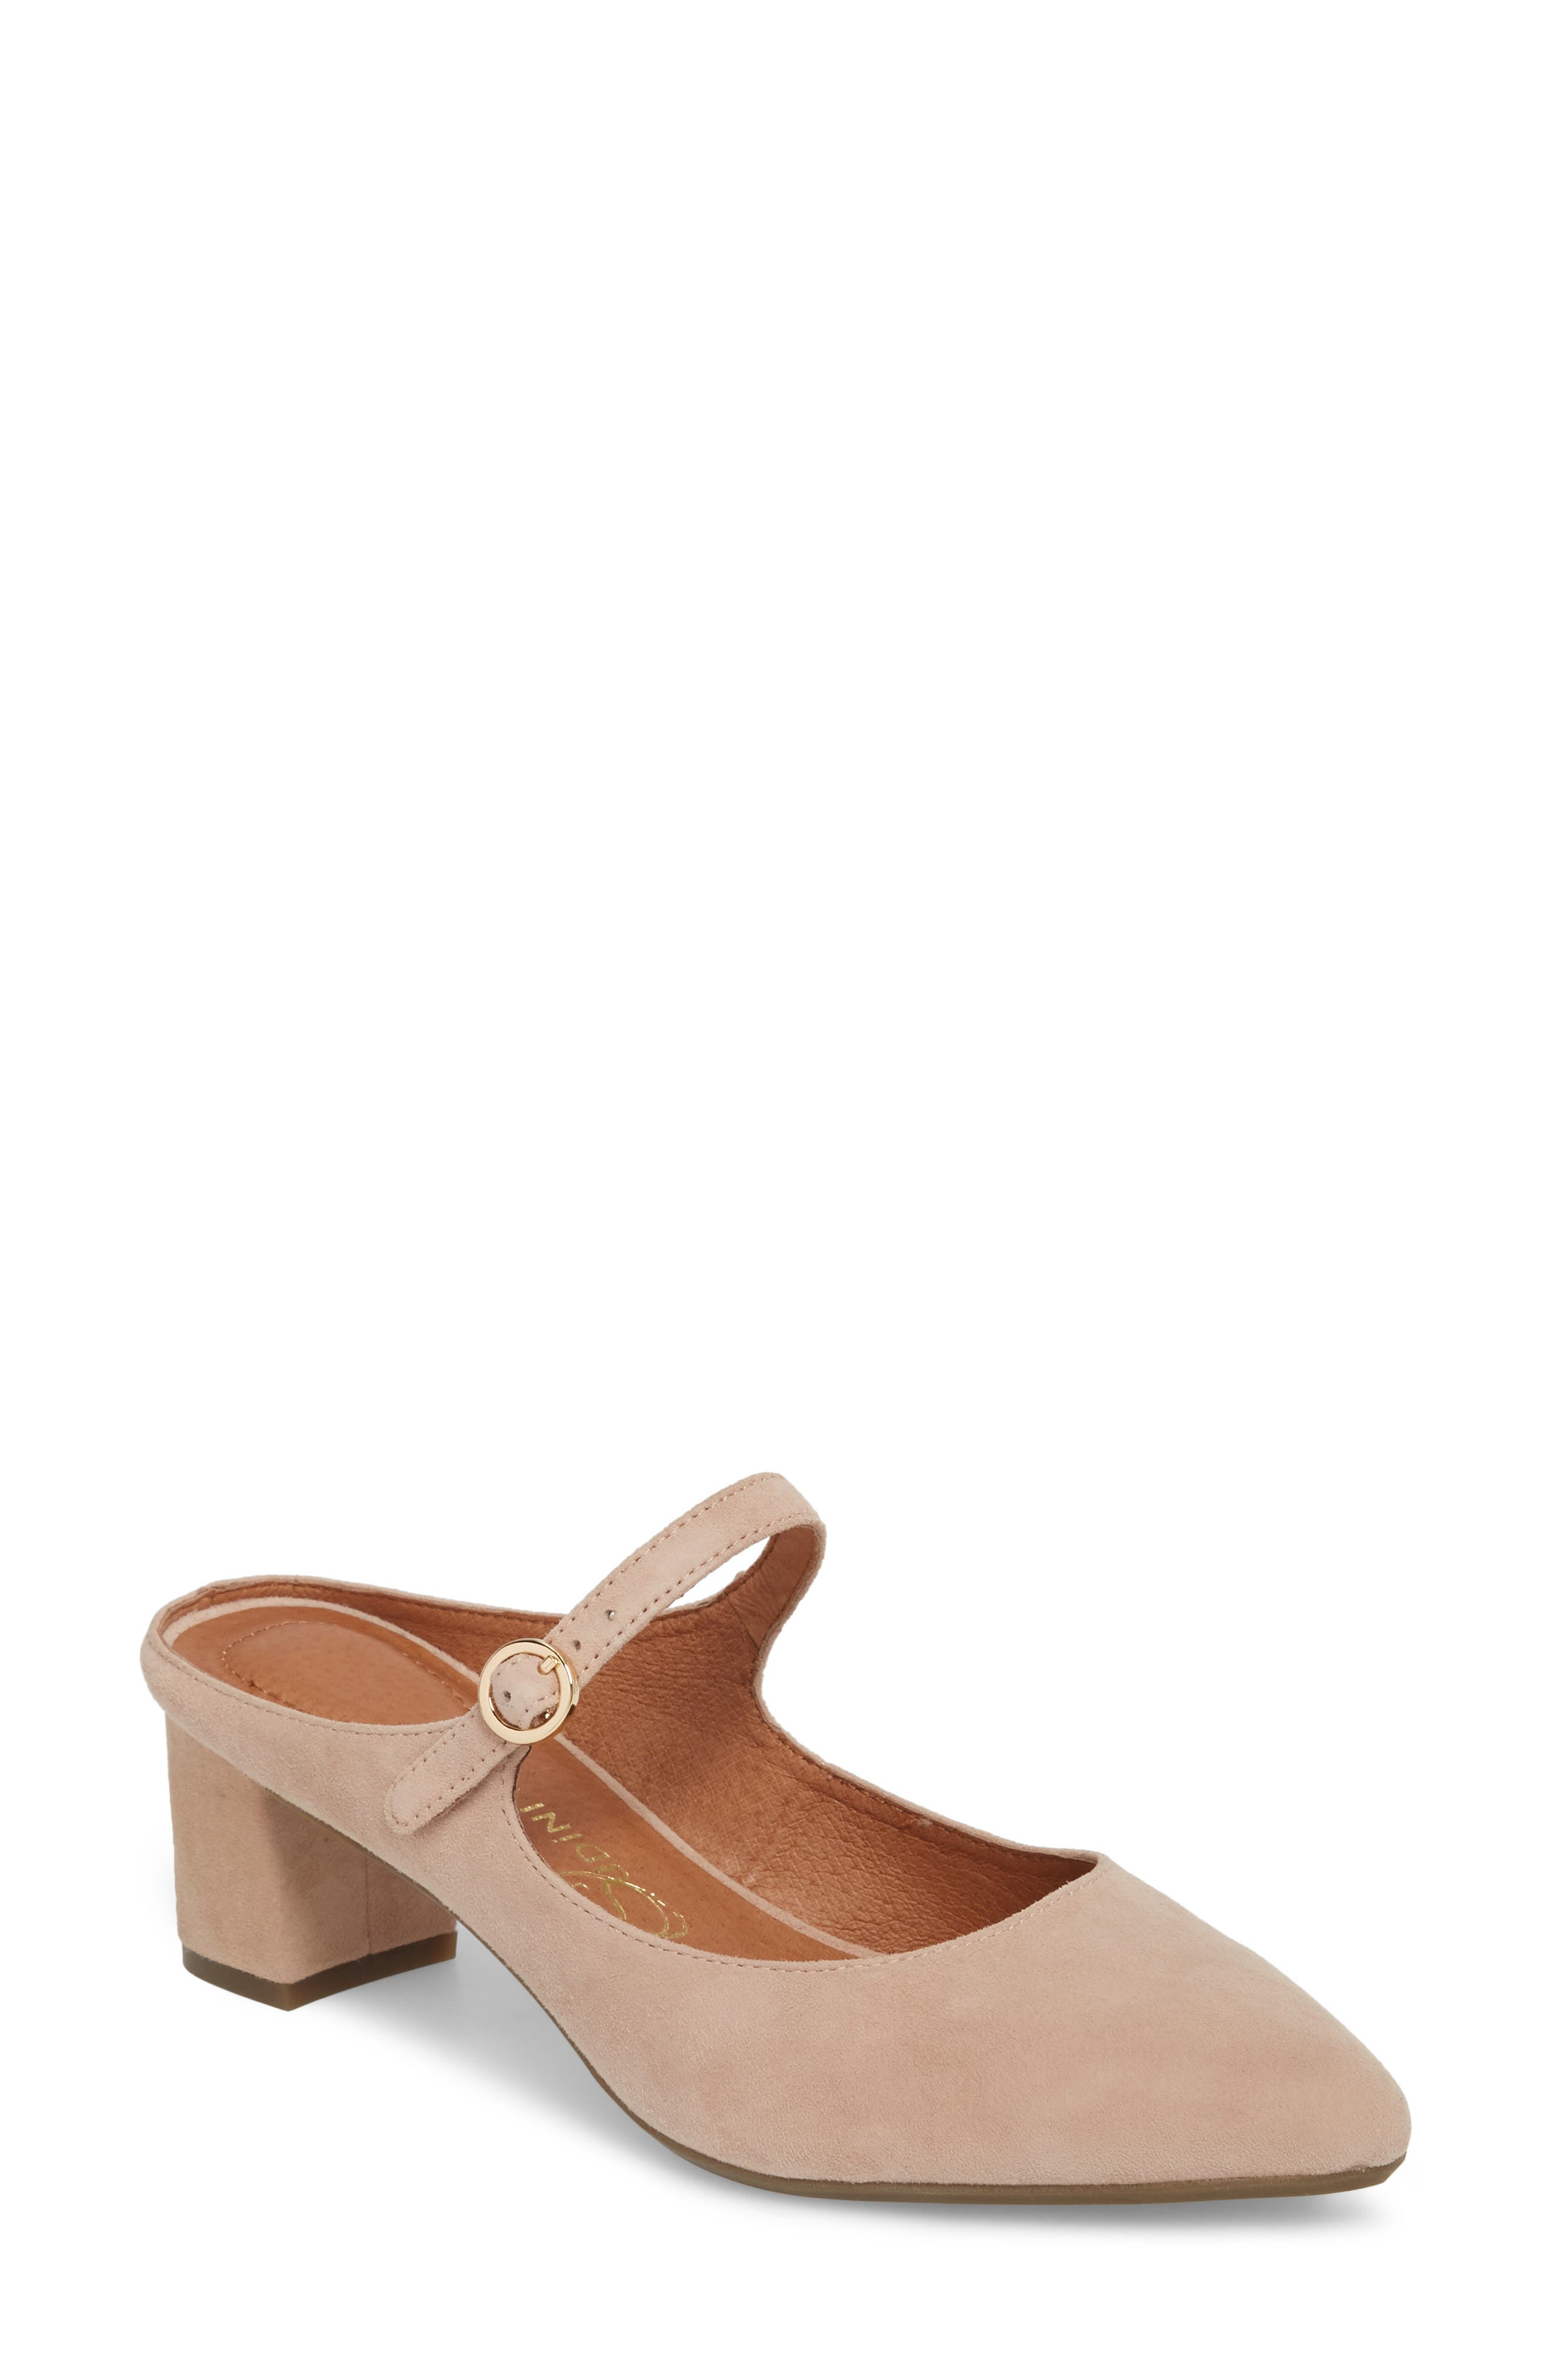 Main Image - Sudini Barletta Mary Jane Mule (Women)